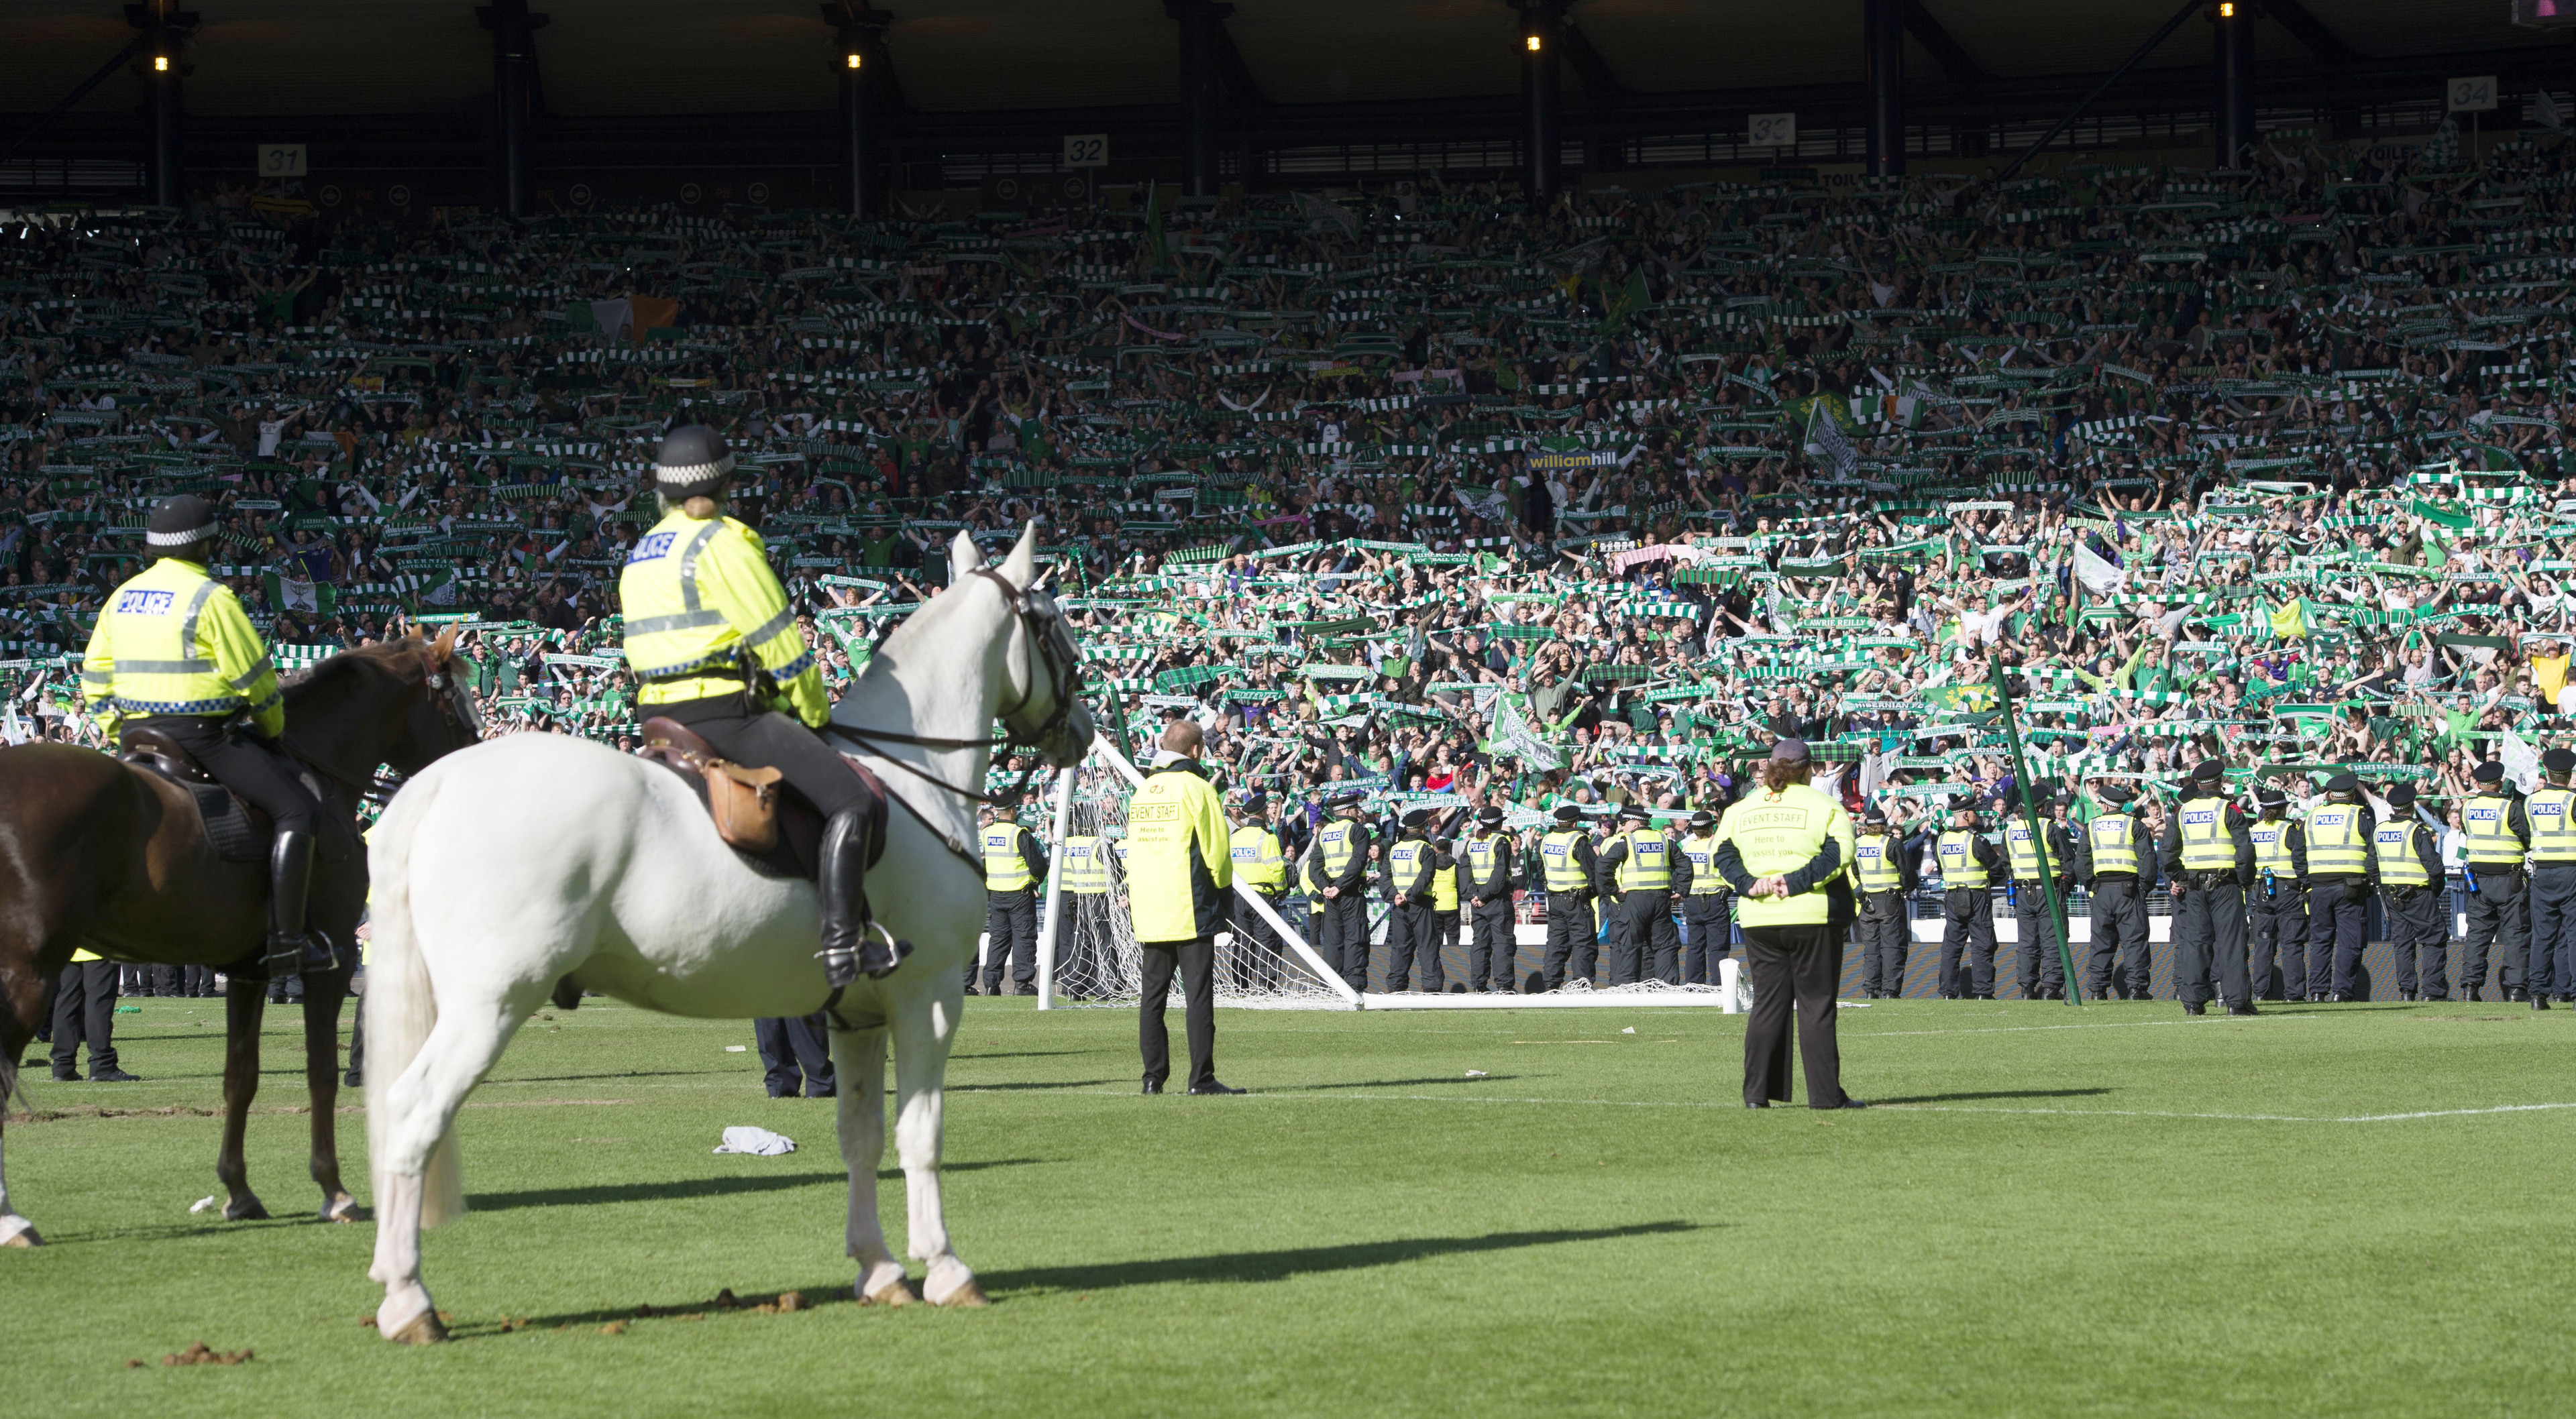 The scene at Hampden after the final whistle.